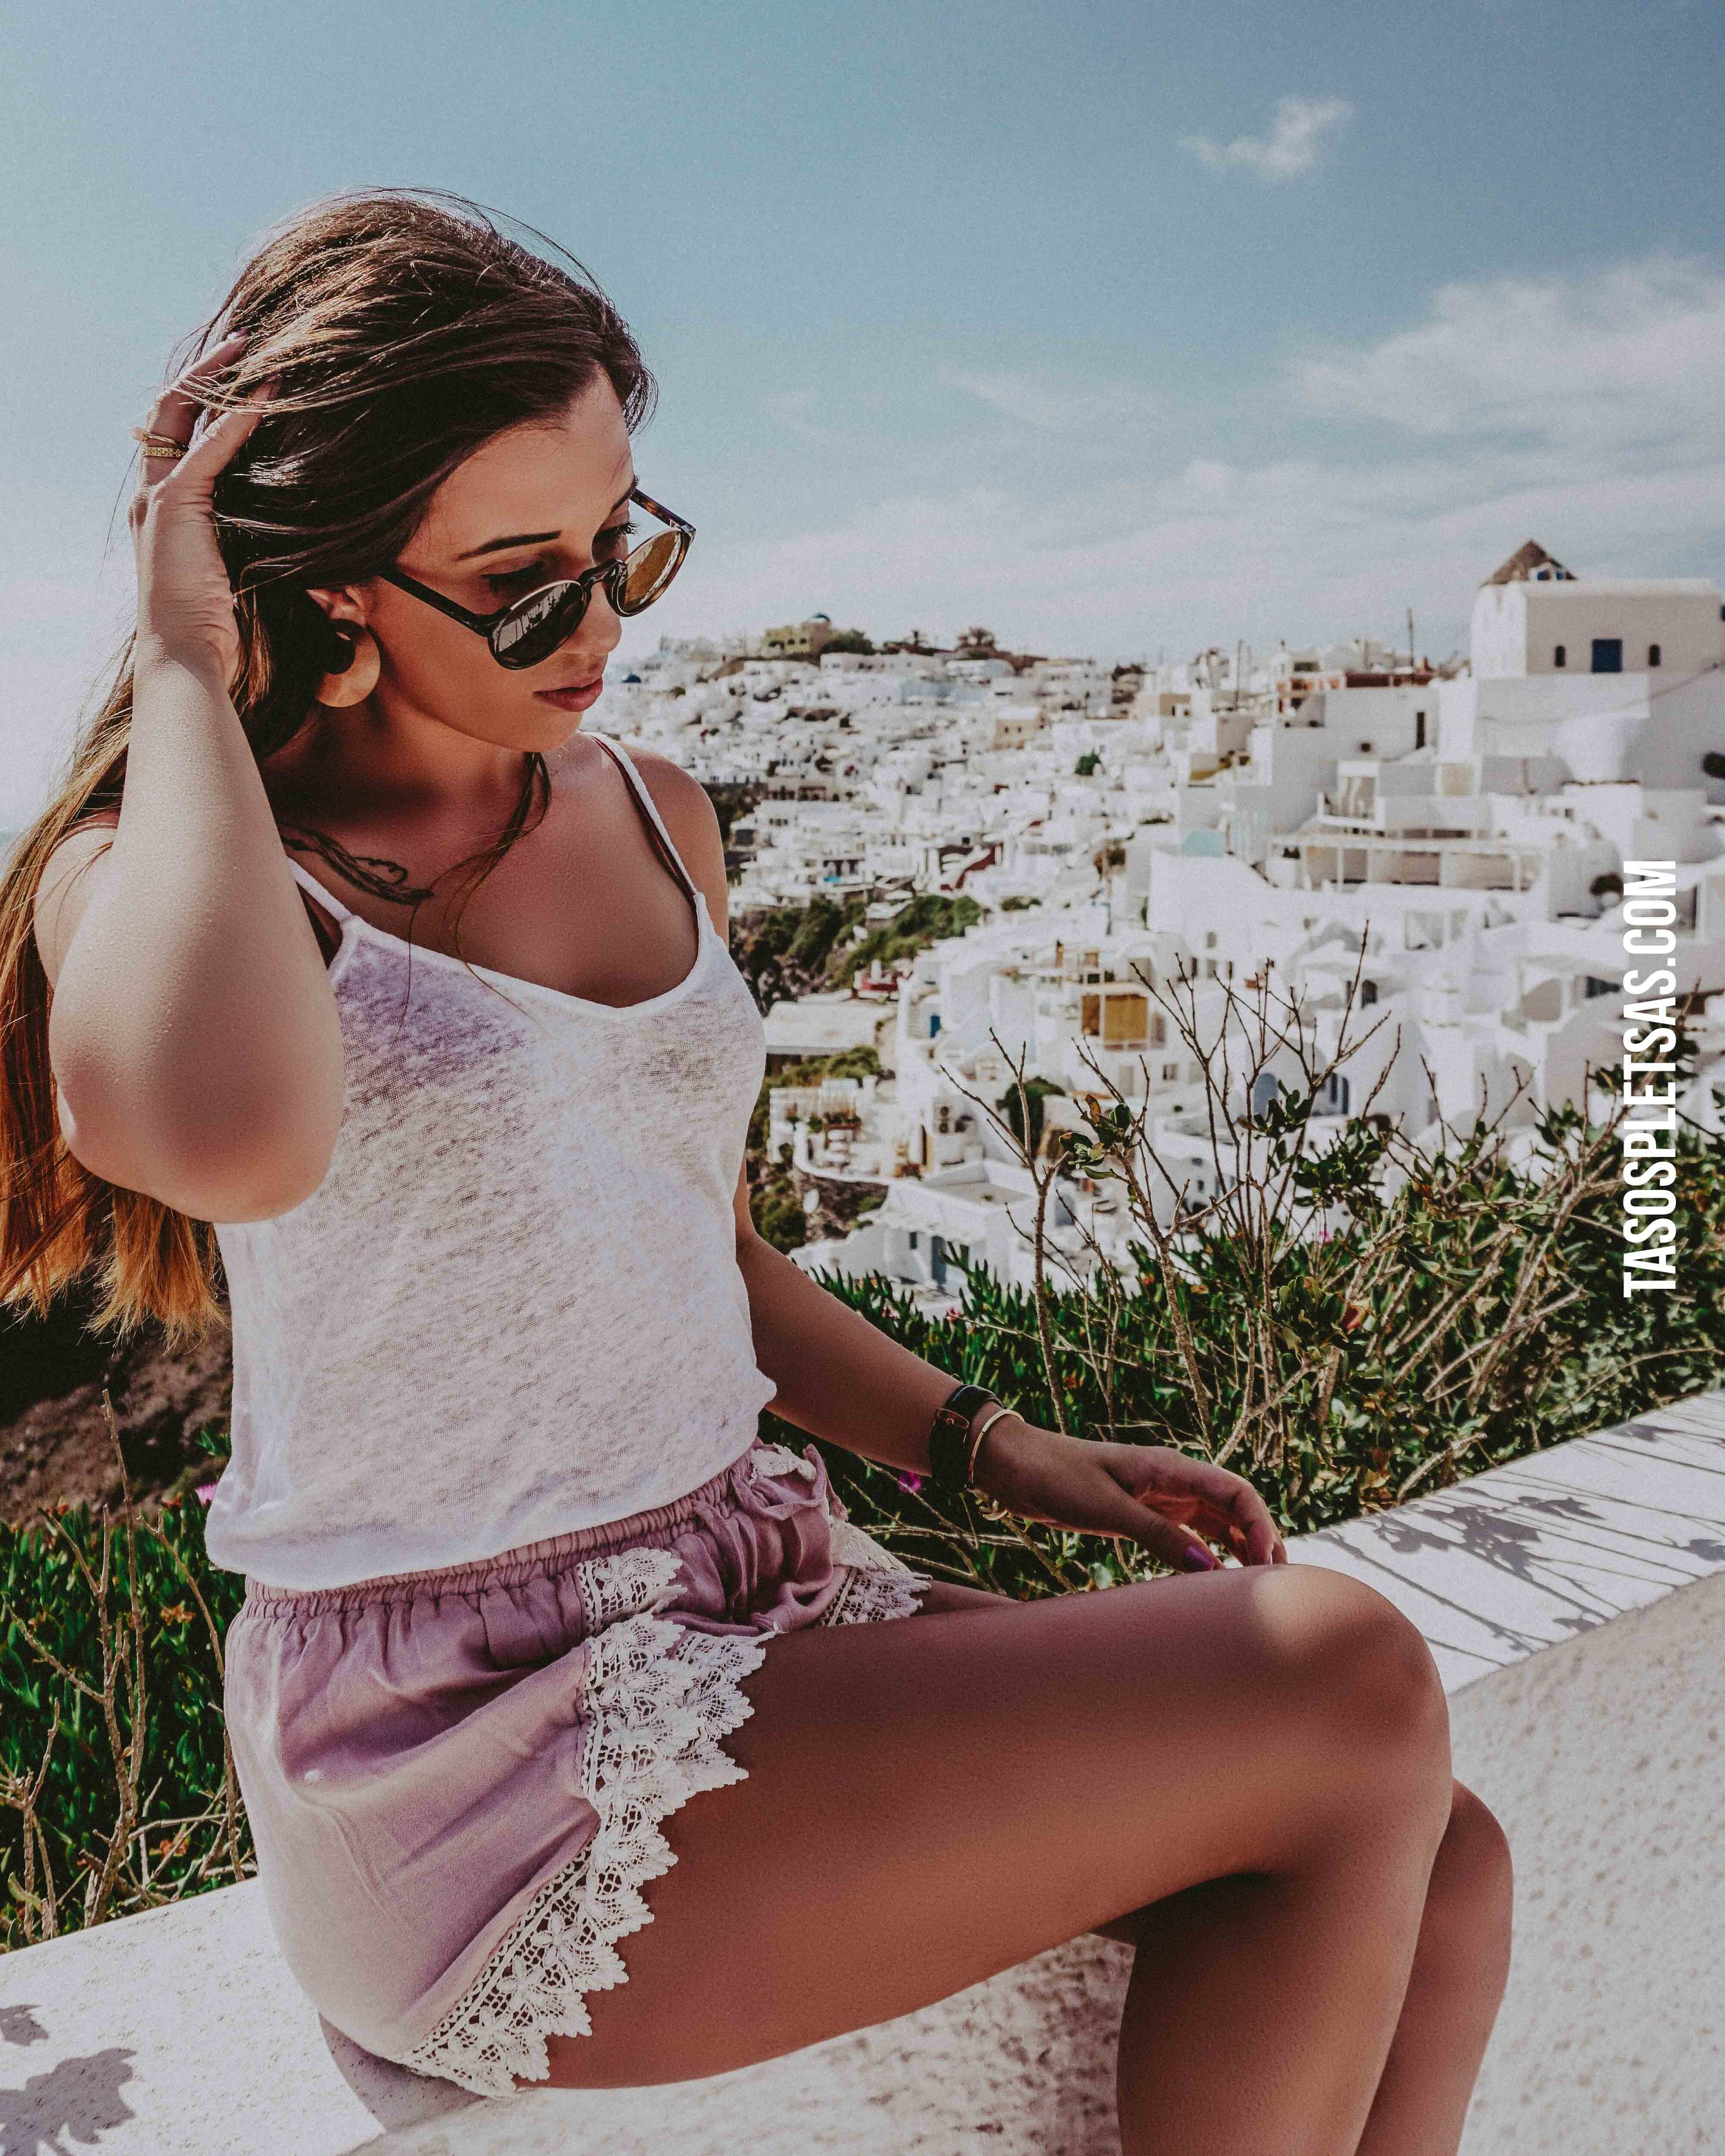 Lifestyle WEB-SANTORINI-2-Lifestyle Presets-1-Before-3 copy.jpg